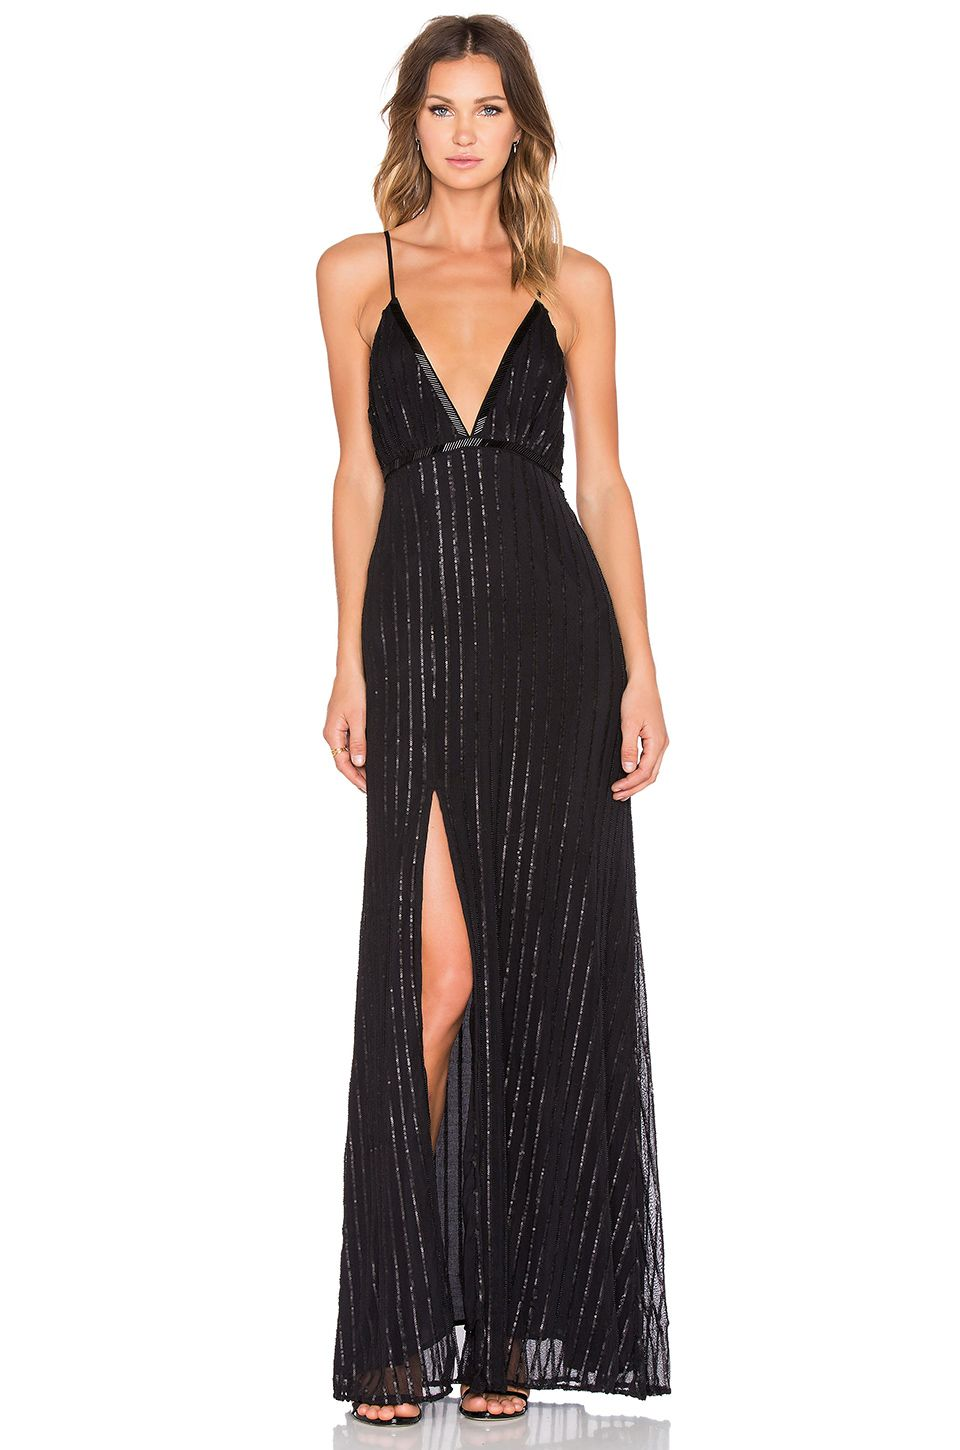 The jetset diaries notte maxi dress in black round bmaid